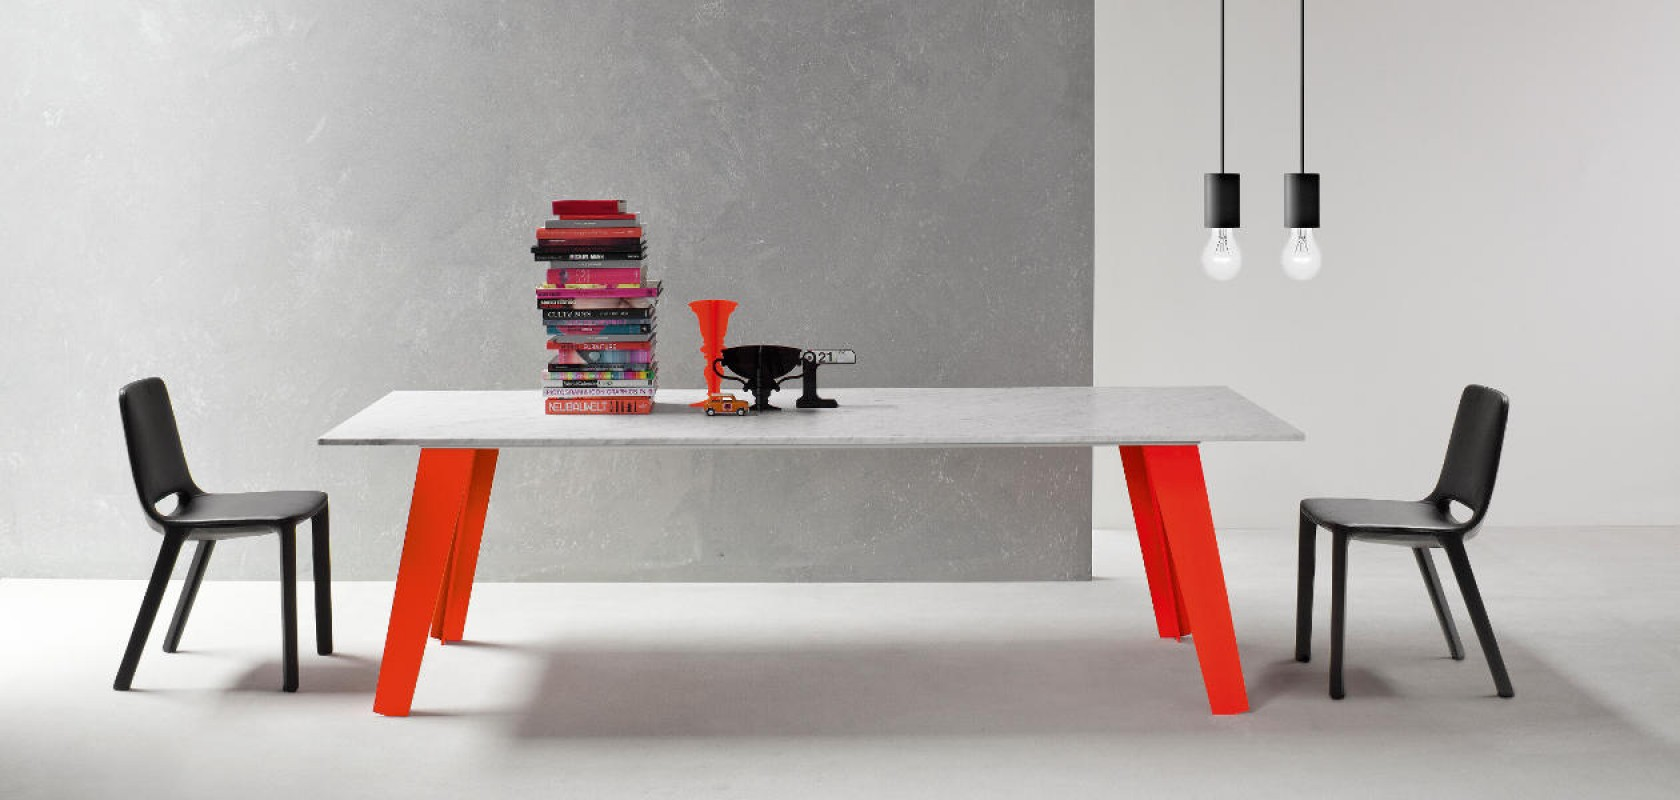 Kamar Welded Table